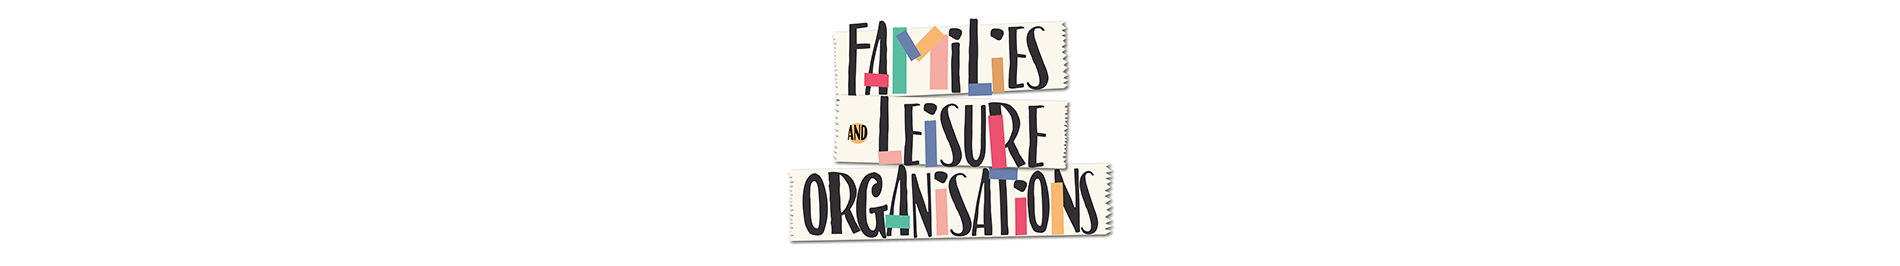 Families and Leisure Organization| Museu Nacional d'Art de Catalunya